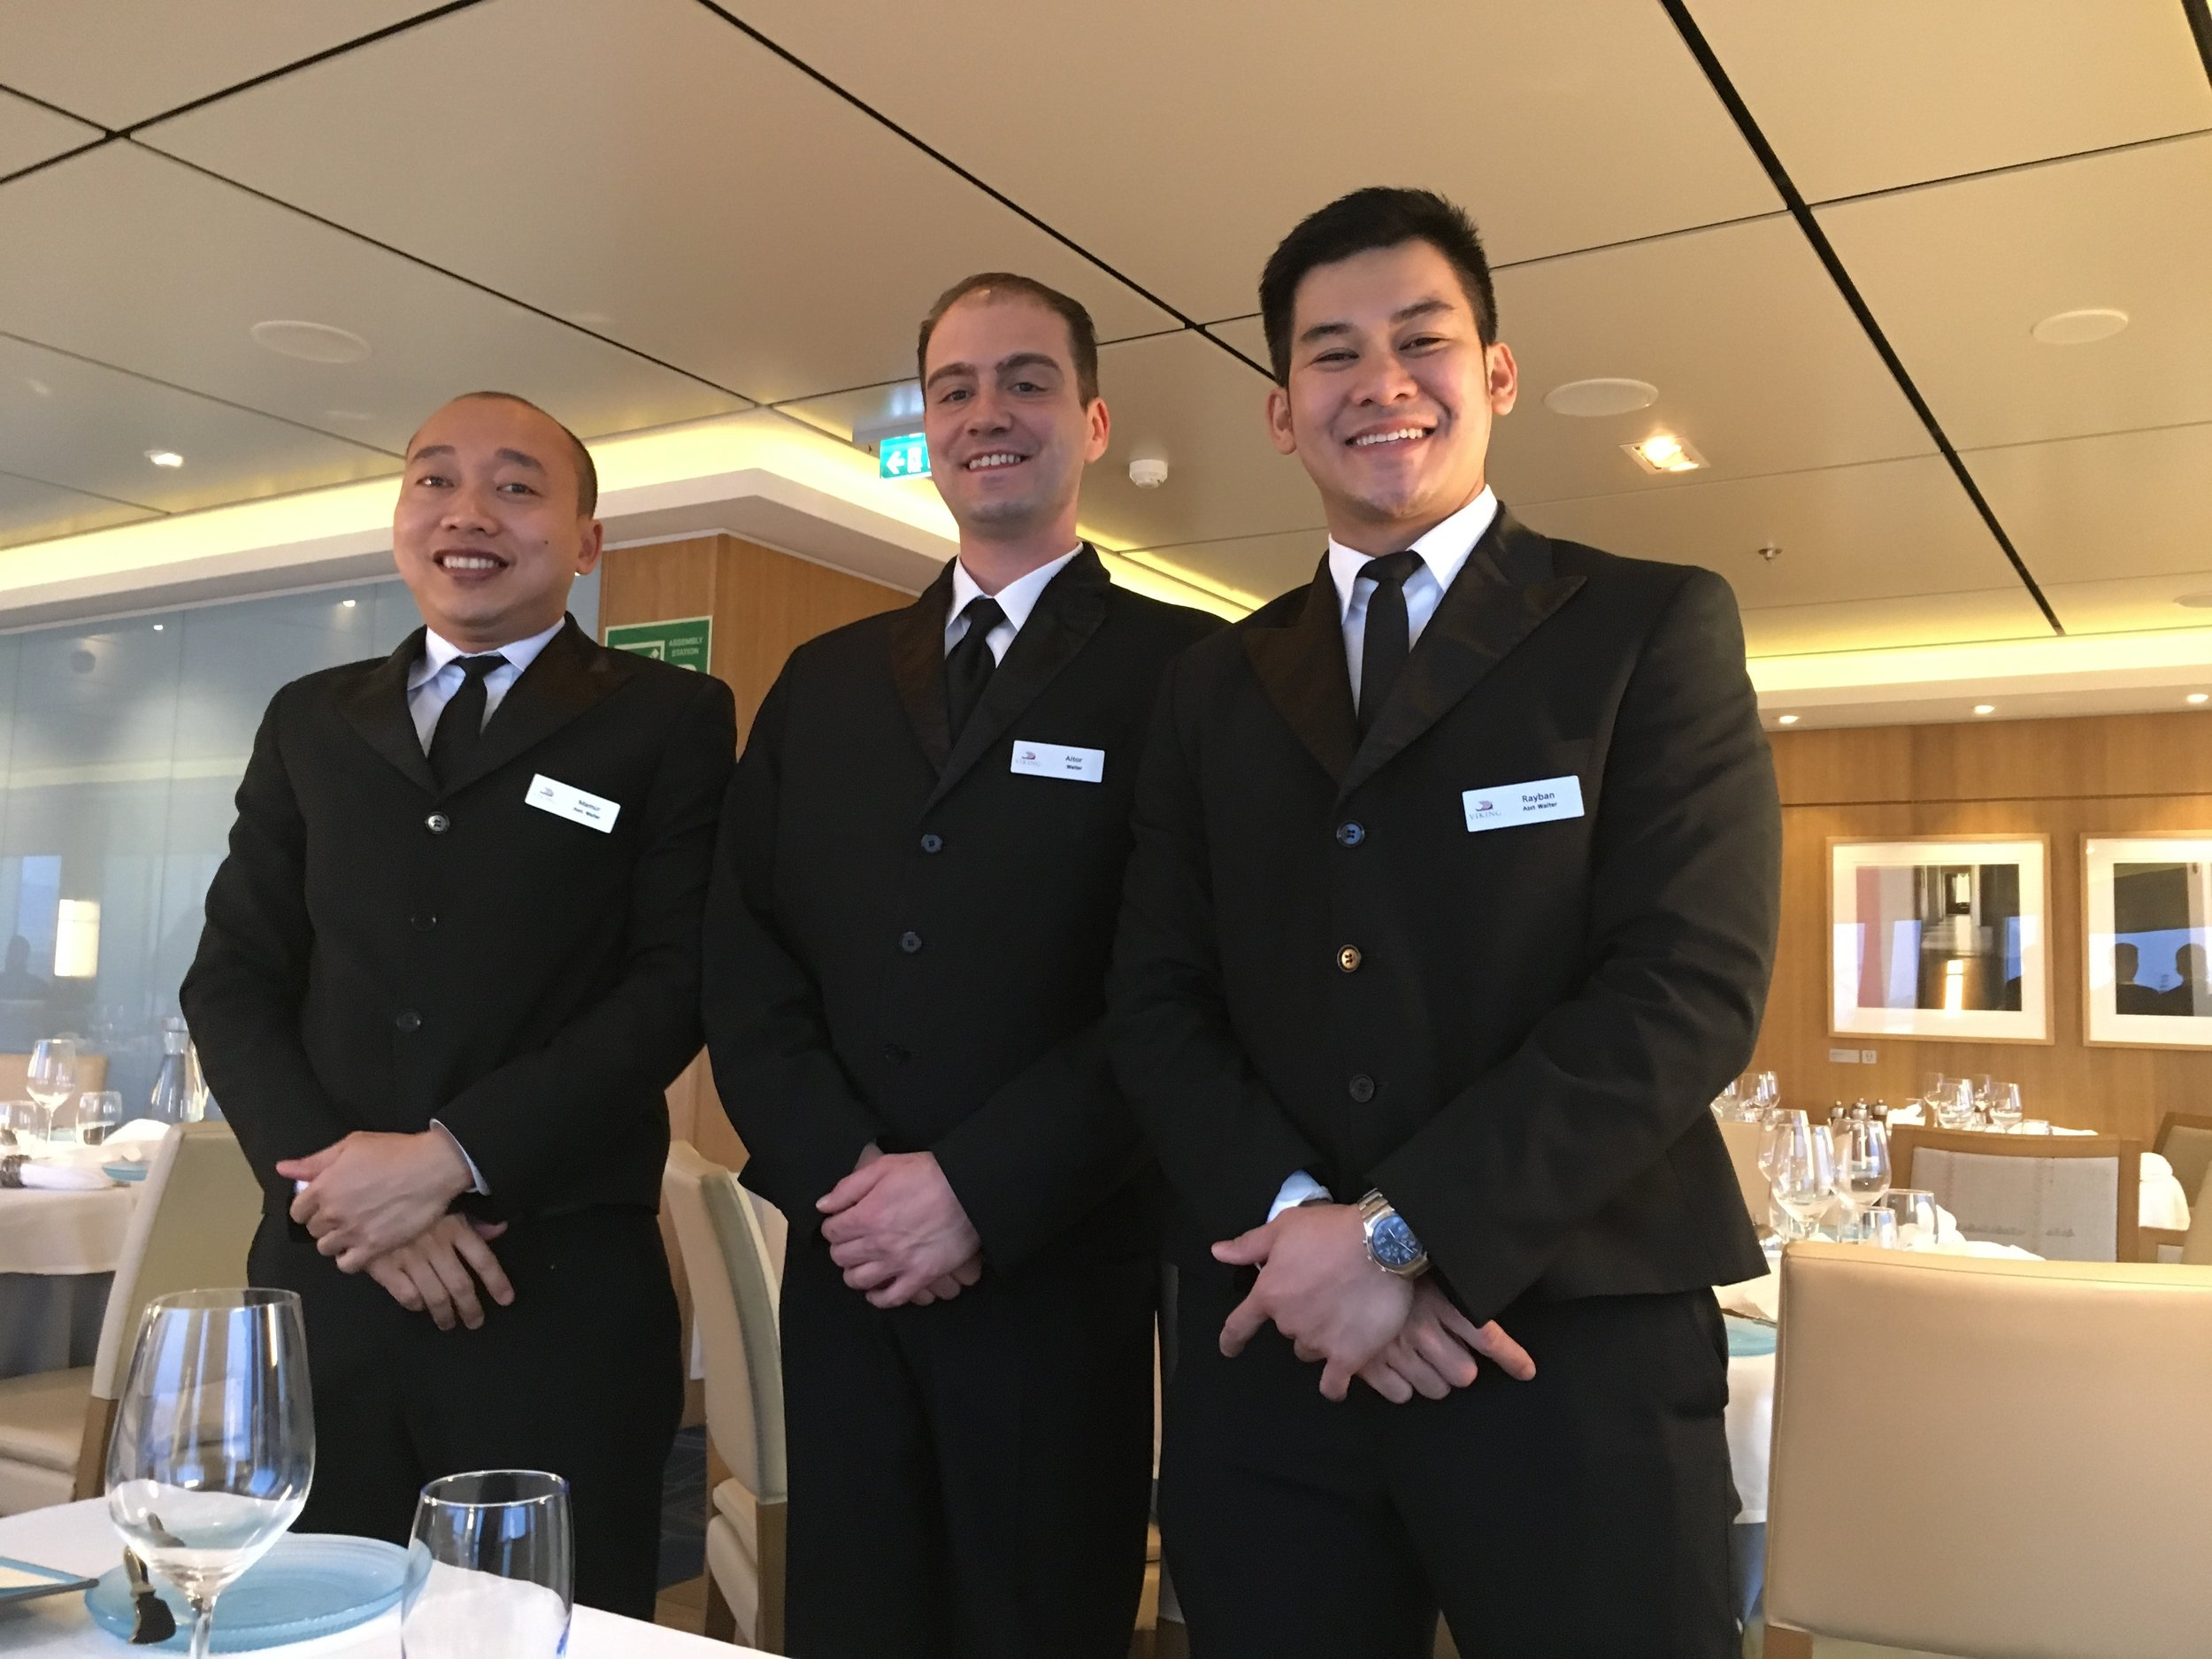 The best waitstaff at sea